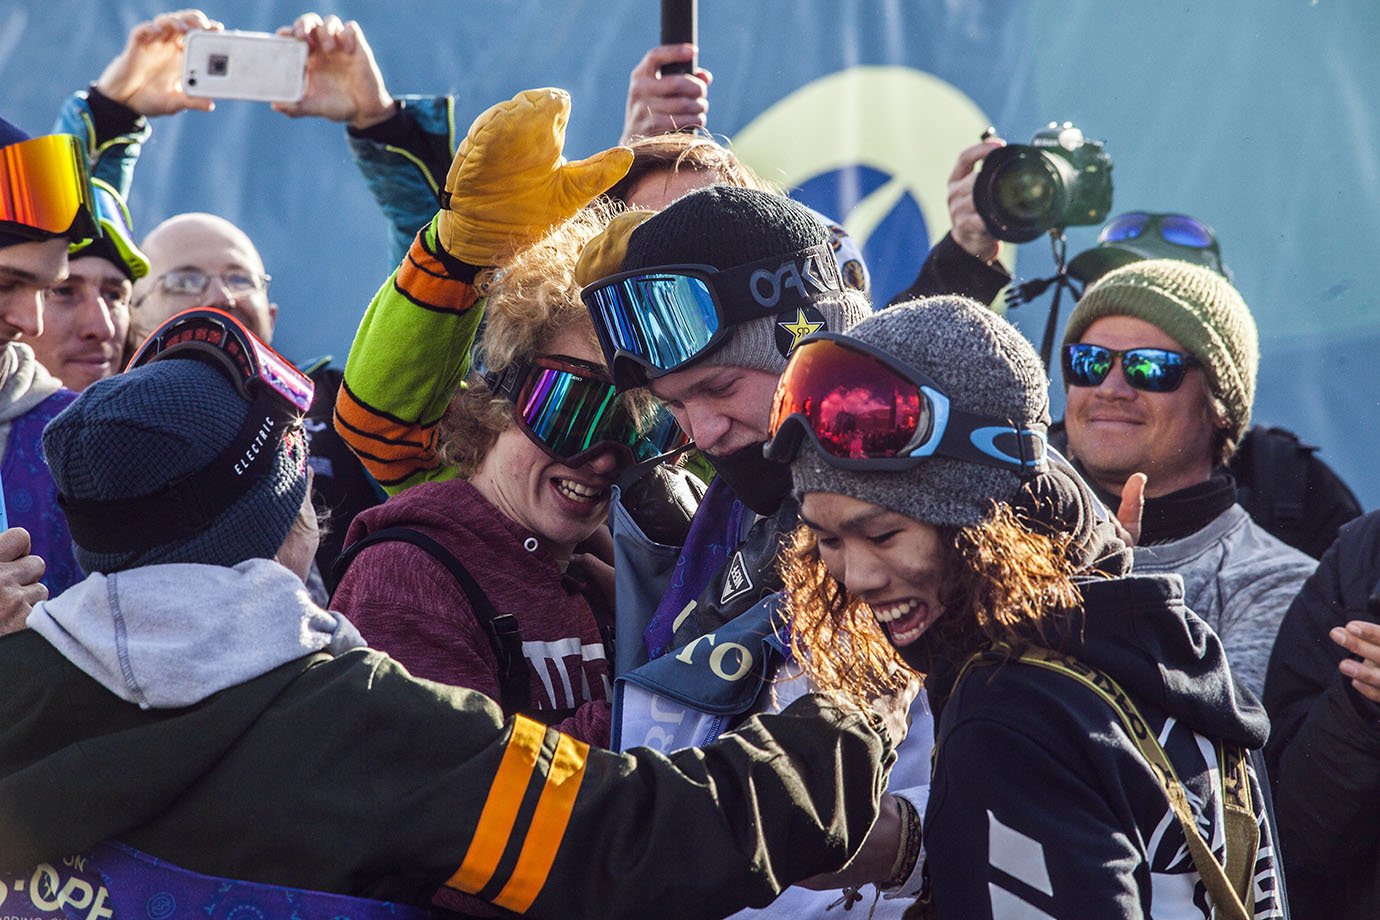 Fellow competitors Yuki Kadono, Eric Beauchemin and others congratulate Kyle Mack on his victory. Mack earned the 89.75 that won him the event on his first run and it stuck the rest of the way, but he had to sit, watch and hope no one would best him as he did not land successfully again on his final two runs.